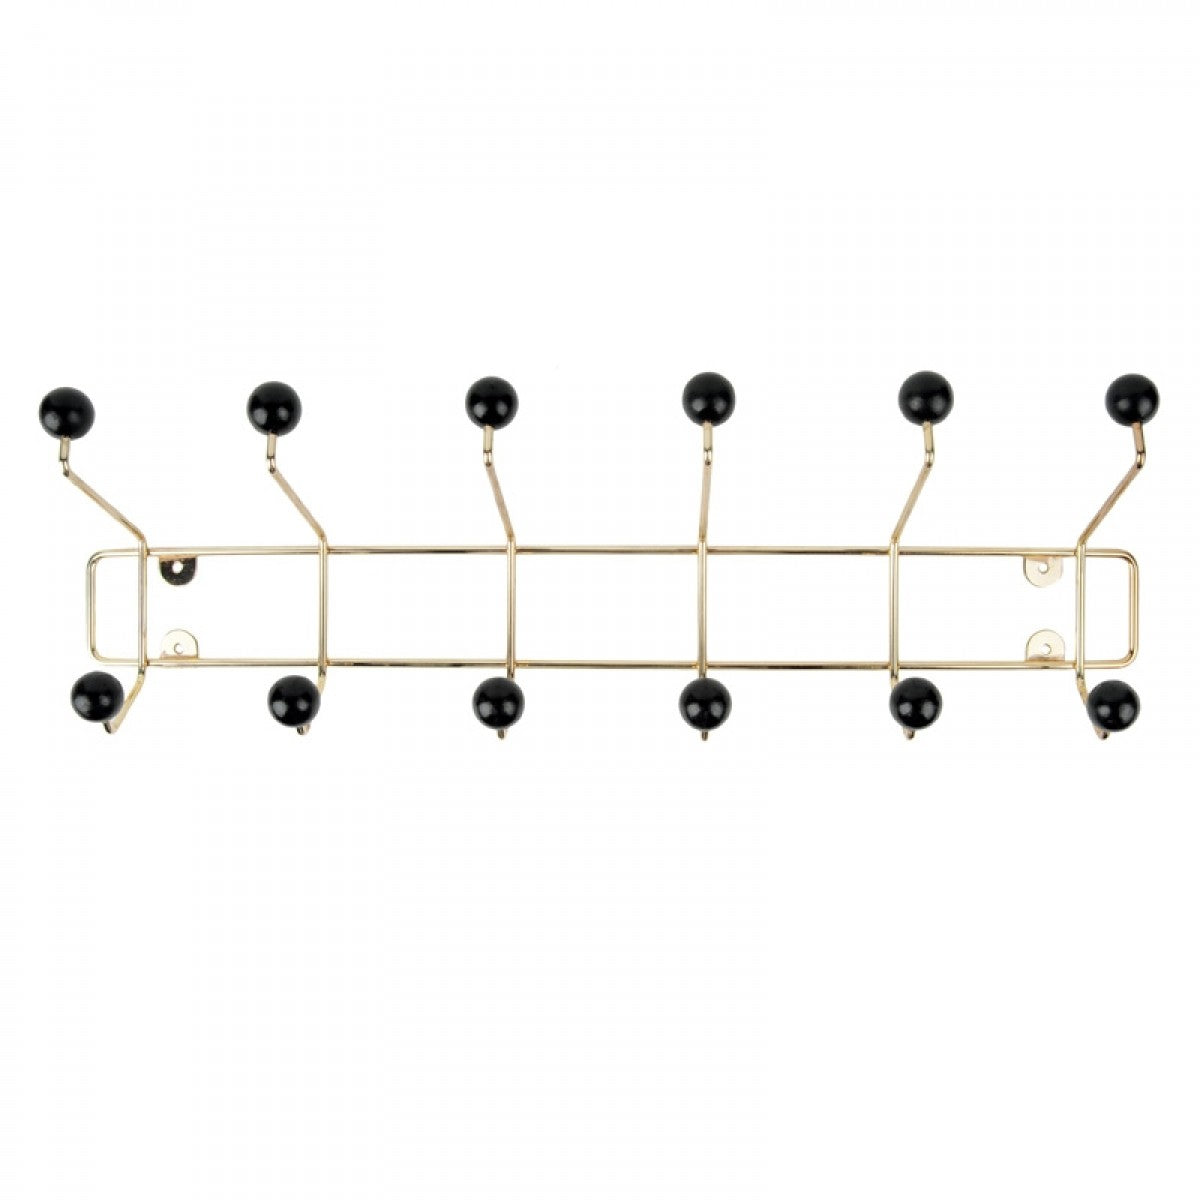 Wall hung coat rack with 12 hooks